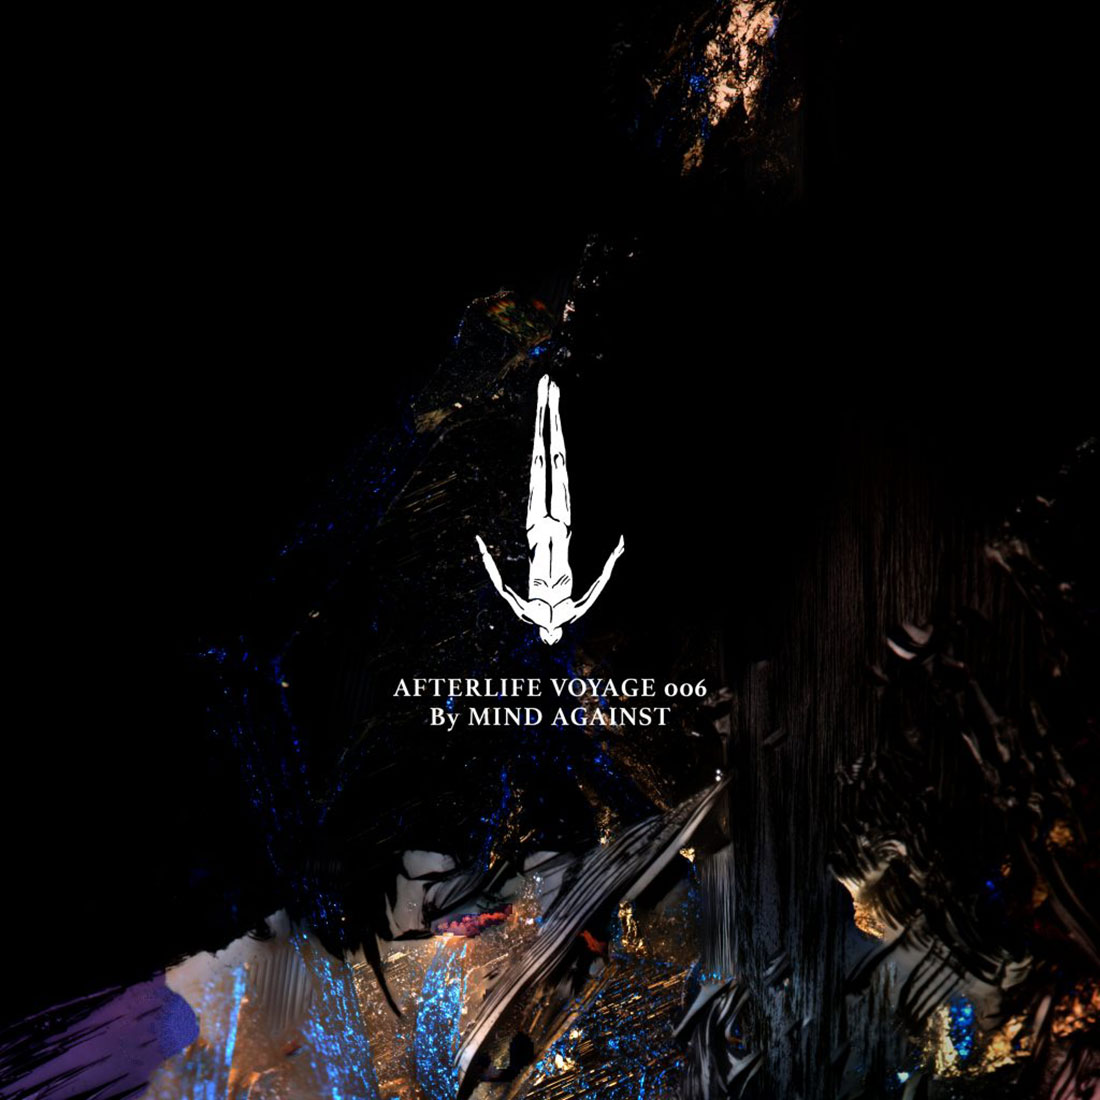 Afterlife Voyage 006 Mind Against